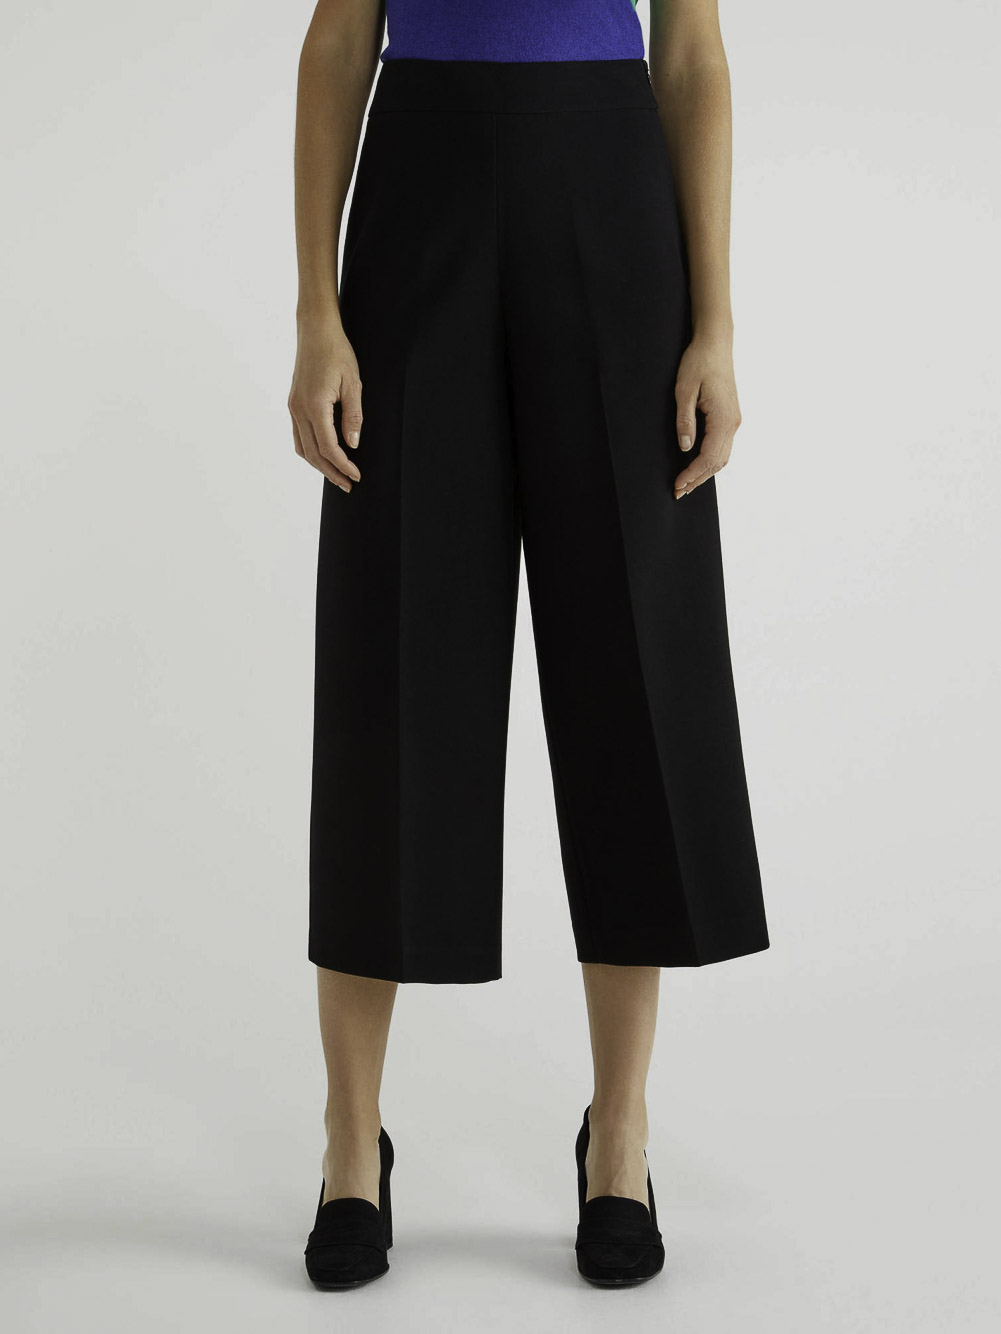 BENETTON Παντελόνι cropped 4XI6559D5 20A100